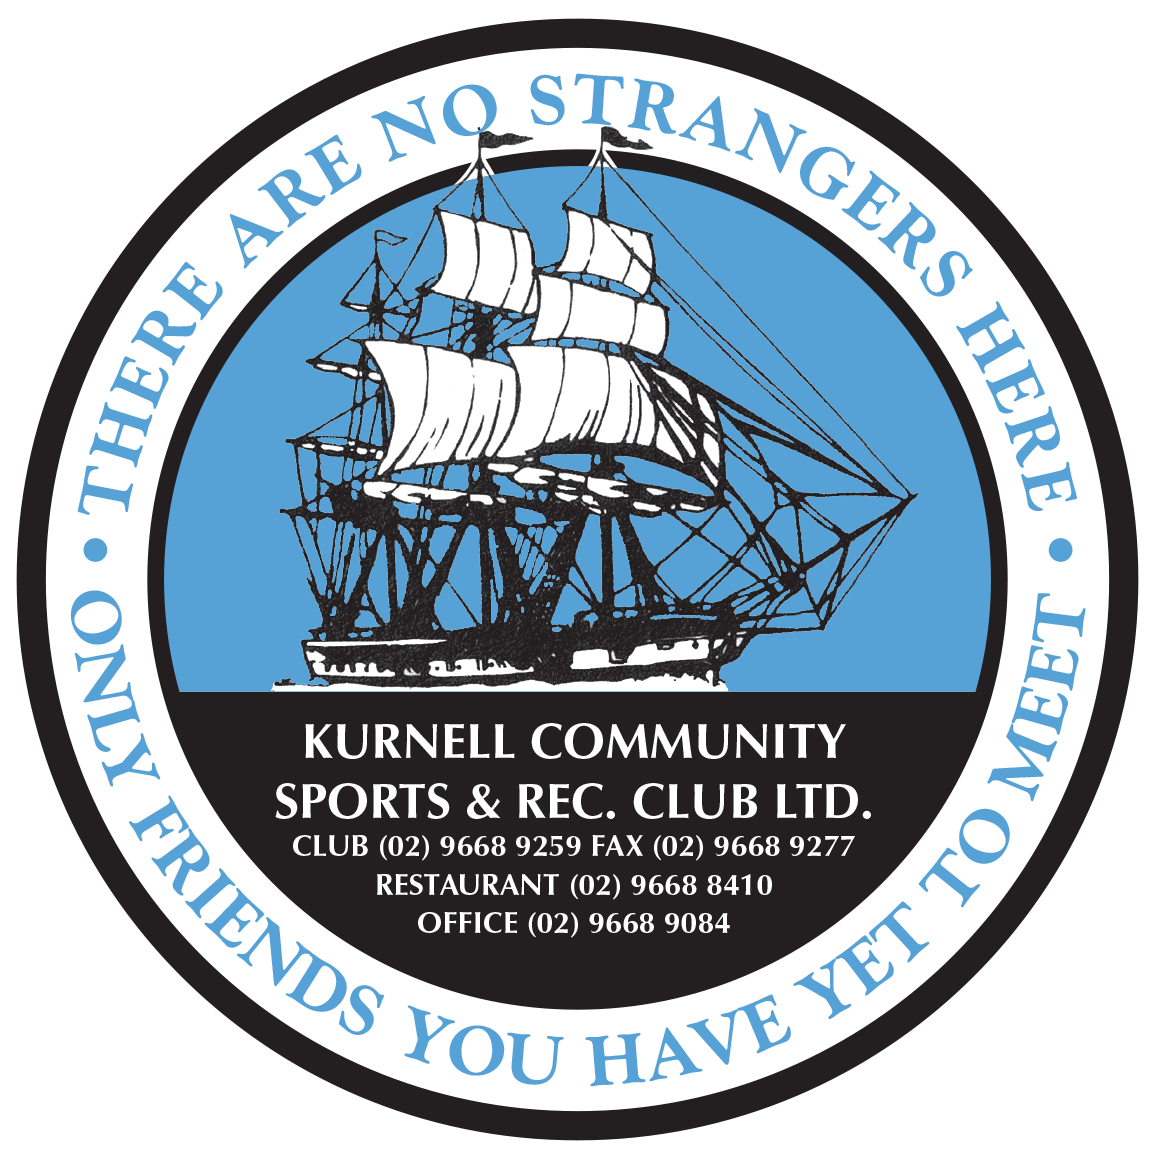 Kurnell Community Sports Recreation Club